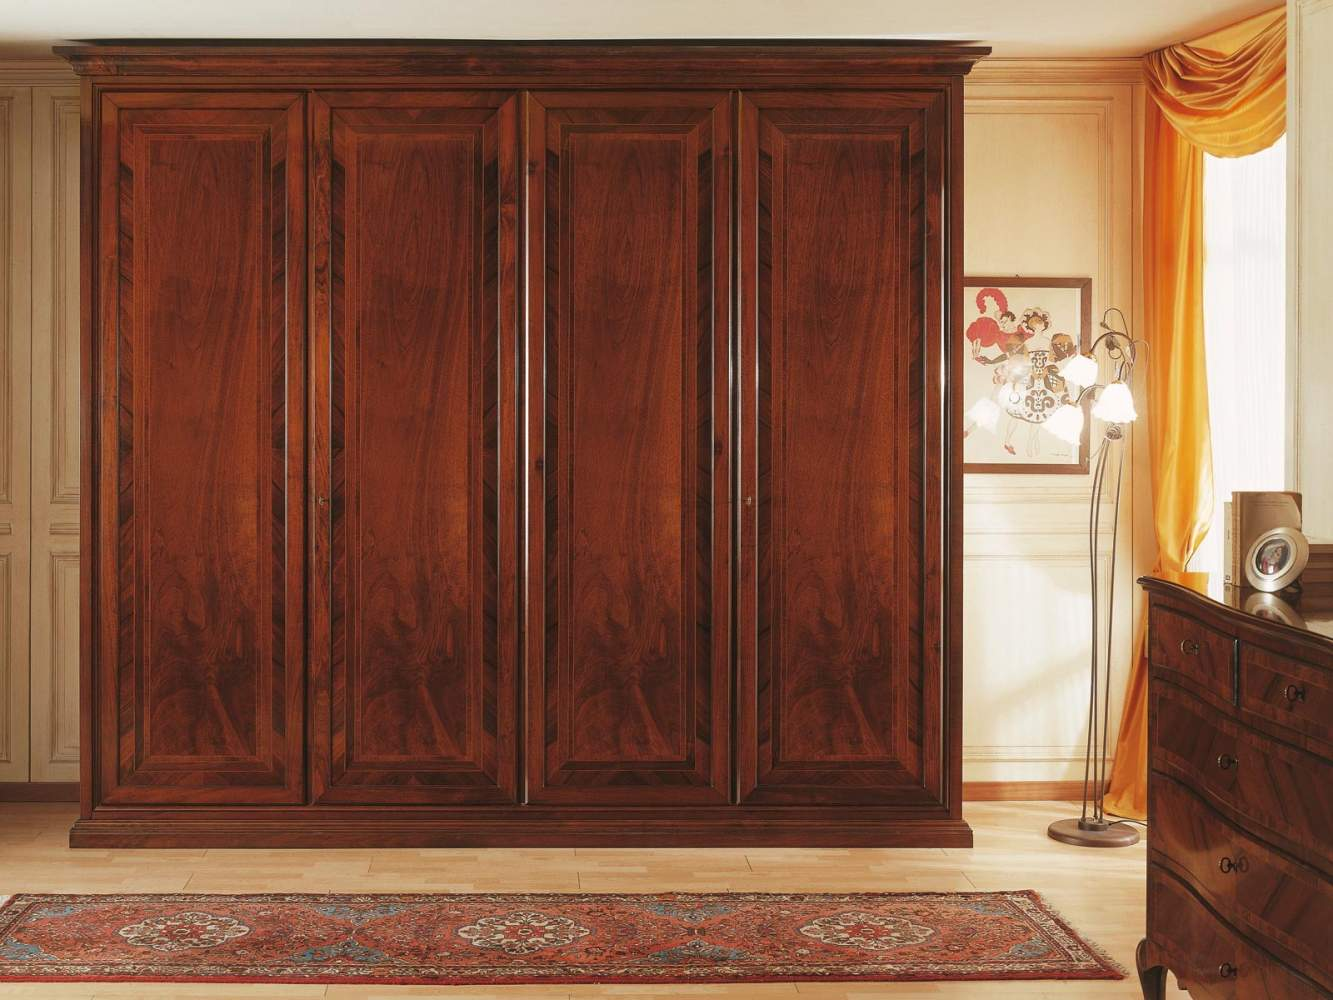 19th century french bedroom, wardrobe two spaces